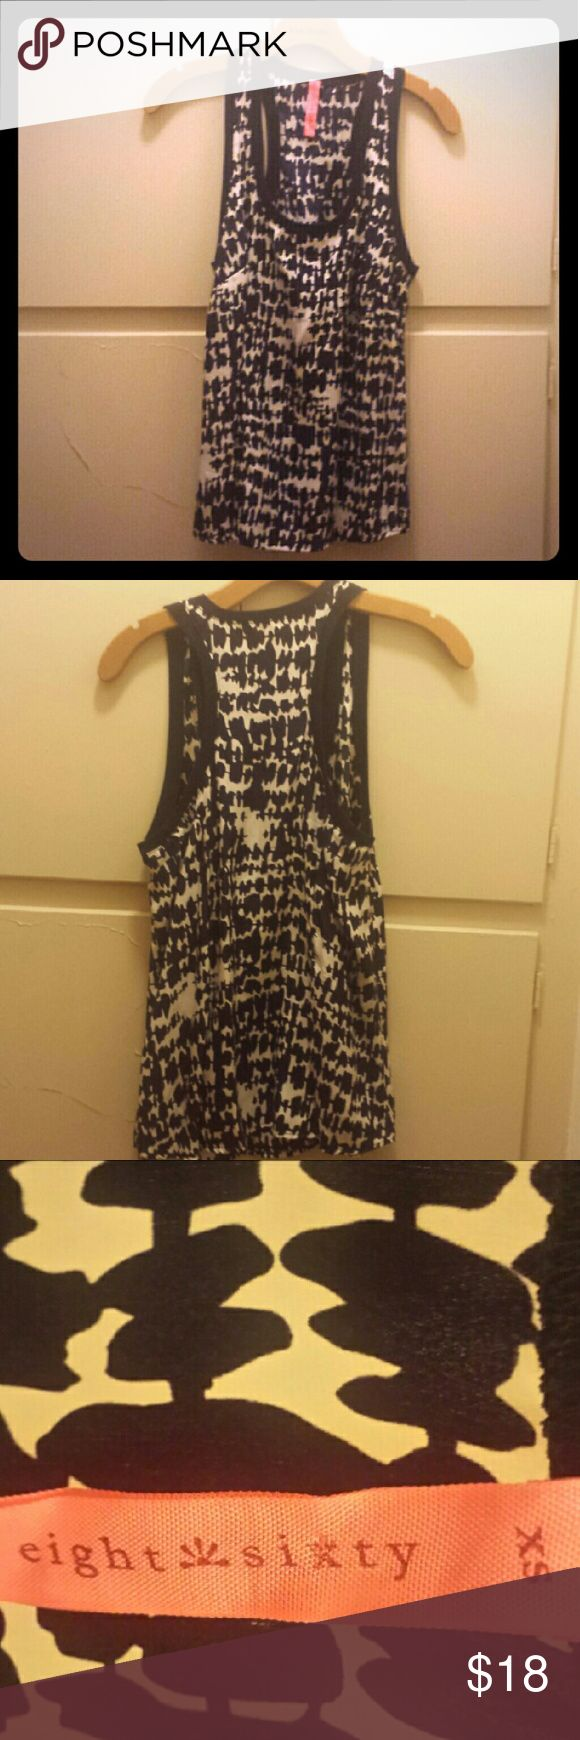 Eight Sixty Silk Tank Top Eight Sixty brand size extra small XS blue and white print (looks like inkblots) silk tank top with a blue trim along the neckline and arm holes. Has one breast pocket. No flaws or signs of wear. Eight Sixty Tops Tank Tops